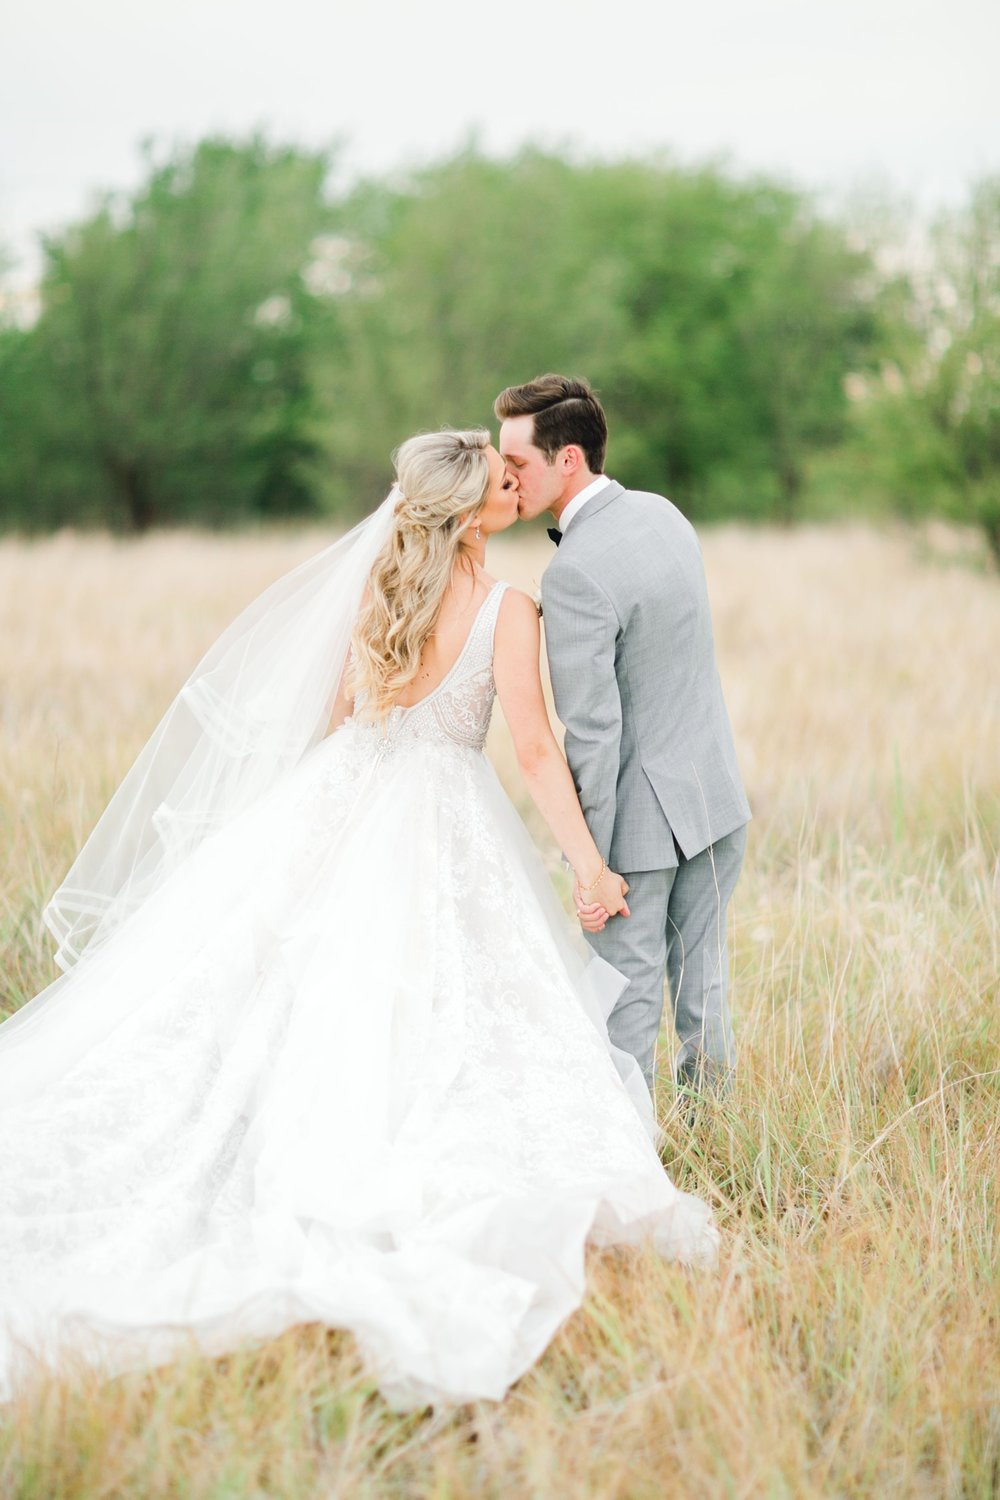 KAITLYN_AND_ZACHARY_HUNT_ALLEEJ_LUBBOCK_WEDDING_PHOTOGRAPHER_EBERLEY_BROOKS_EVENTS_0142.jpg